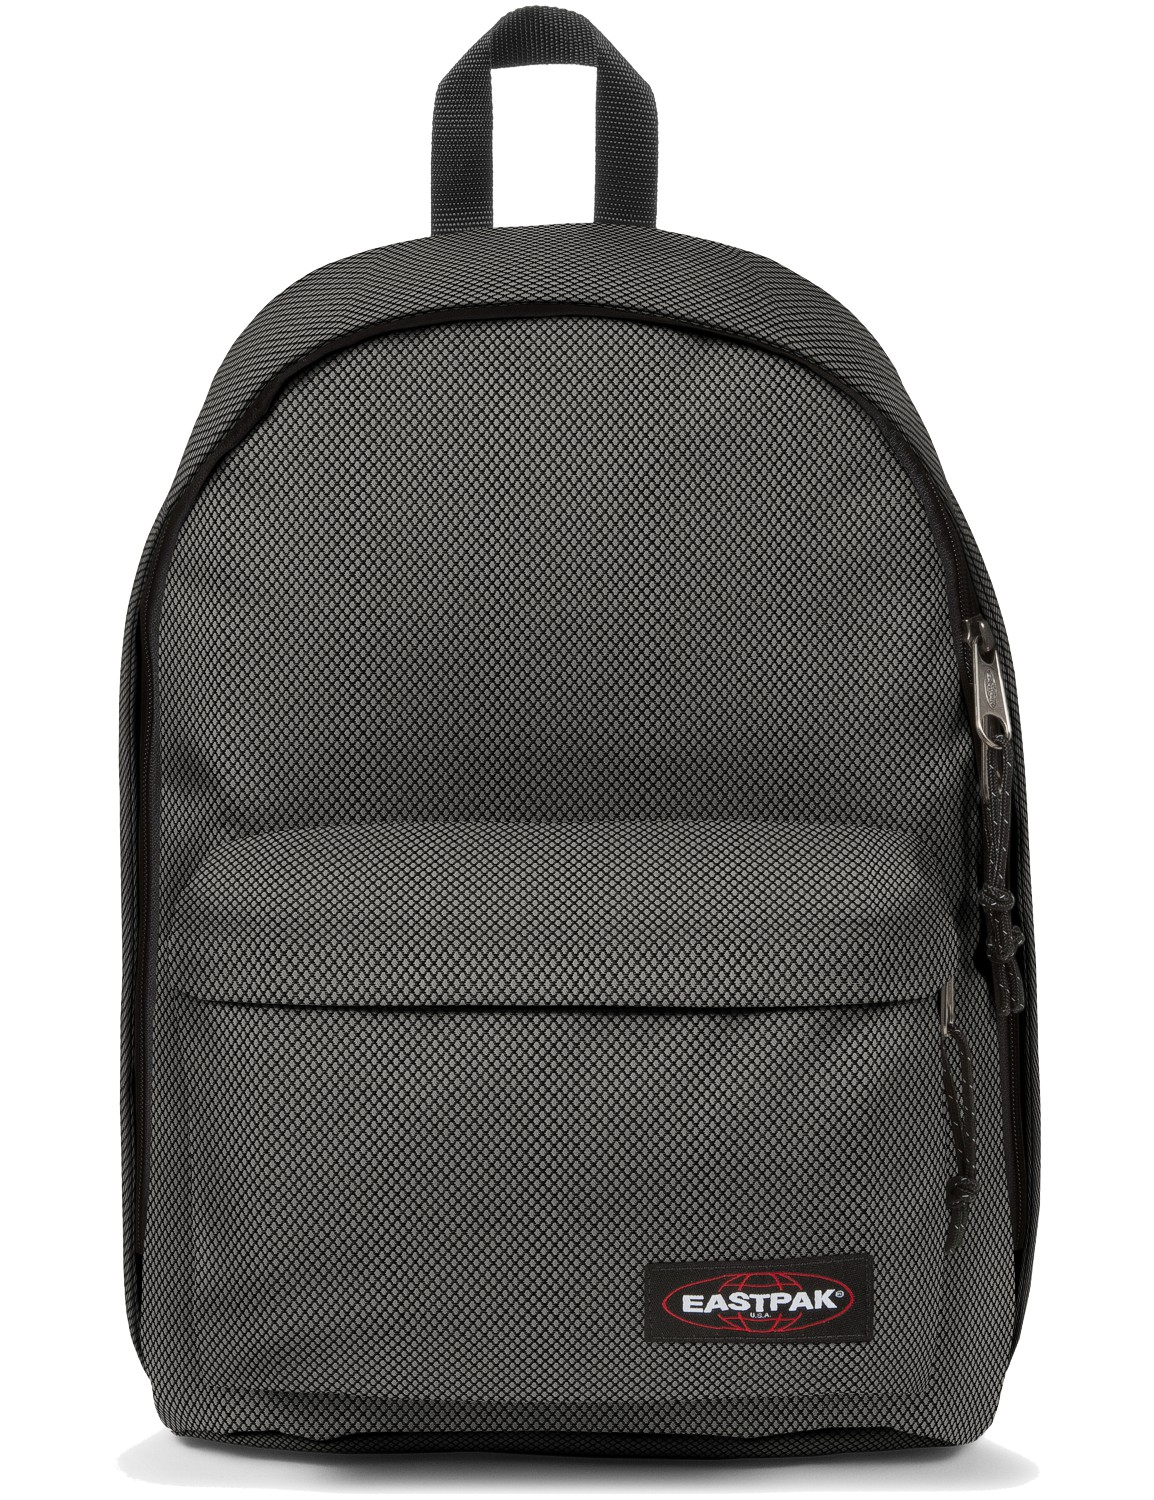 Eastpak Rucksack »Out of Office« mit Laptopfach Meshknit Grey Grau